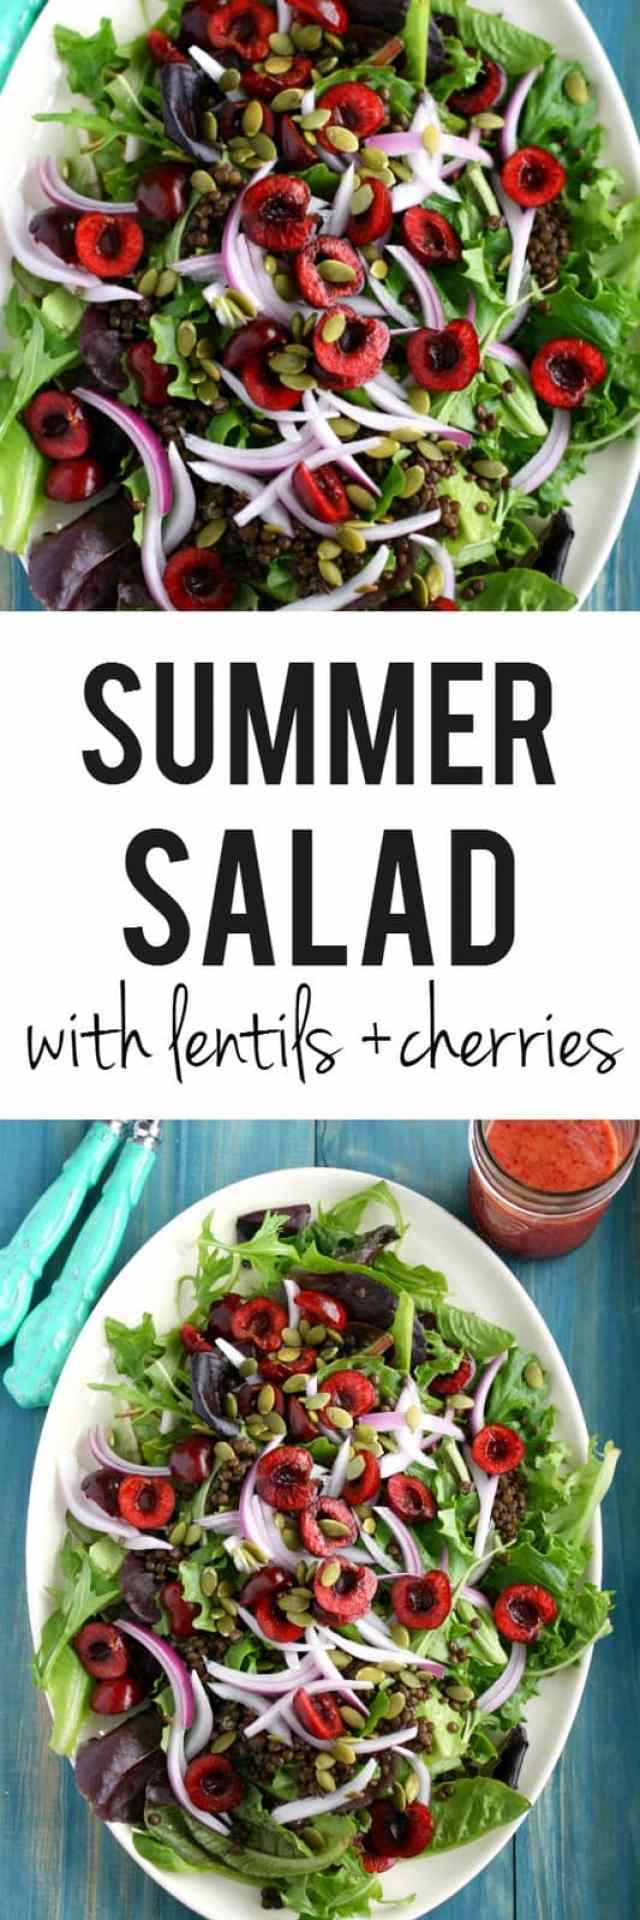 The perfect way to enjoy summer cherries! On top of a bed of greens, with lentils, pepitas, and cherry vinaigrette.